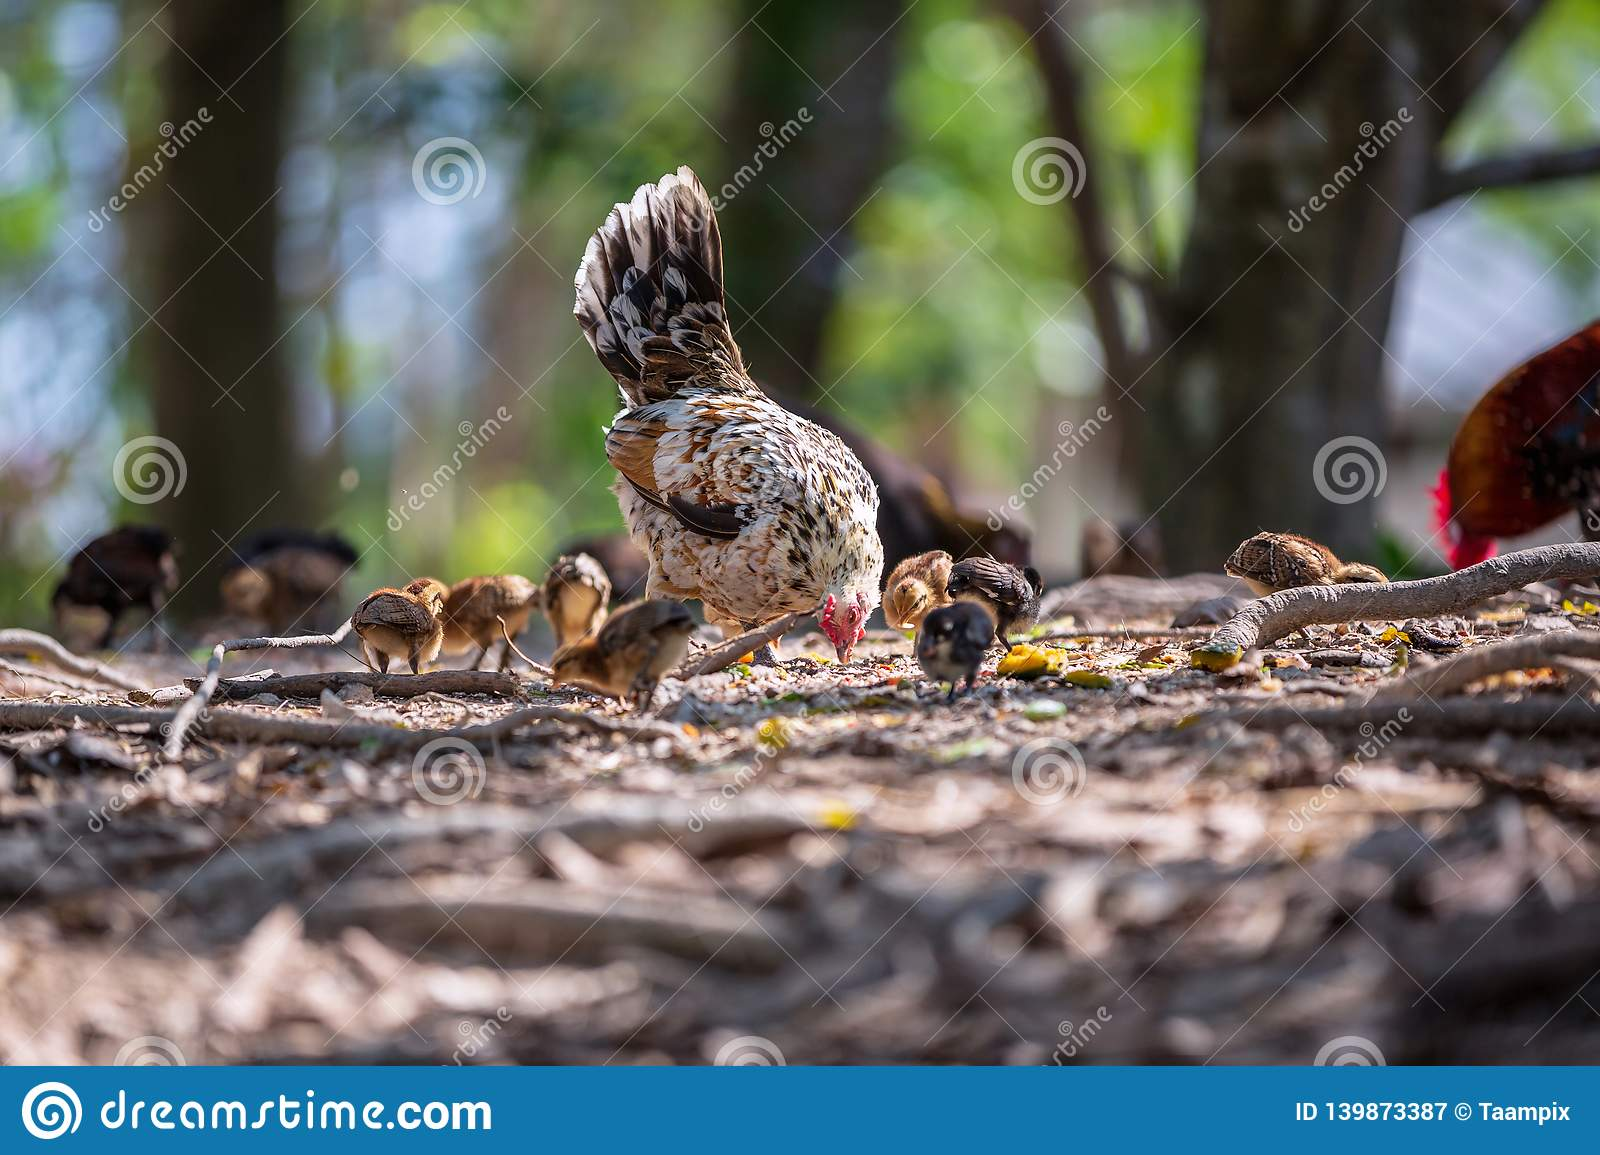 Mother hen and her baby Chickens pecking grain on ground. Chicks with their mom eating grain on ground